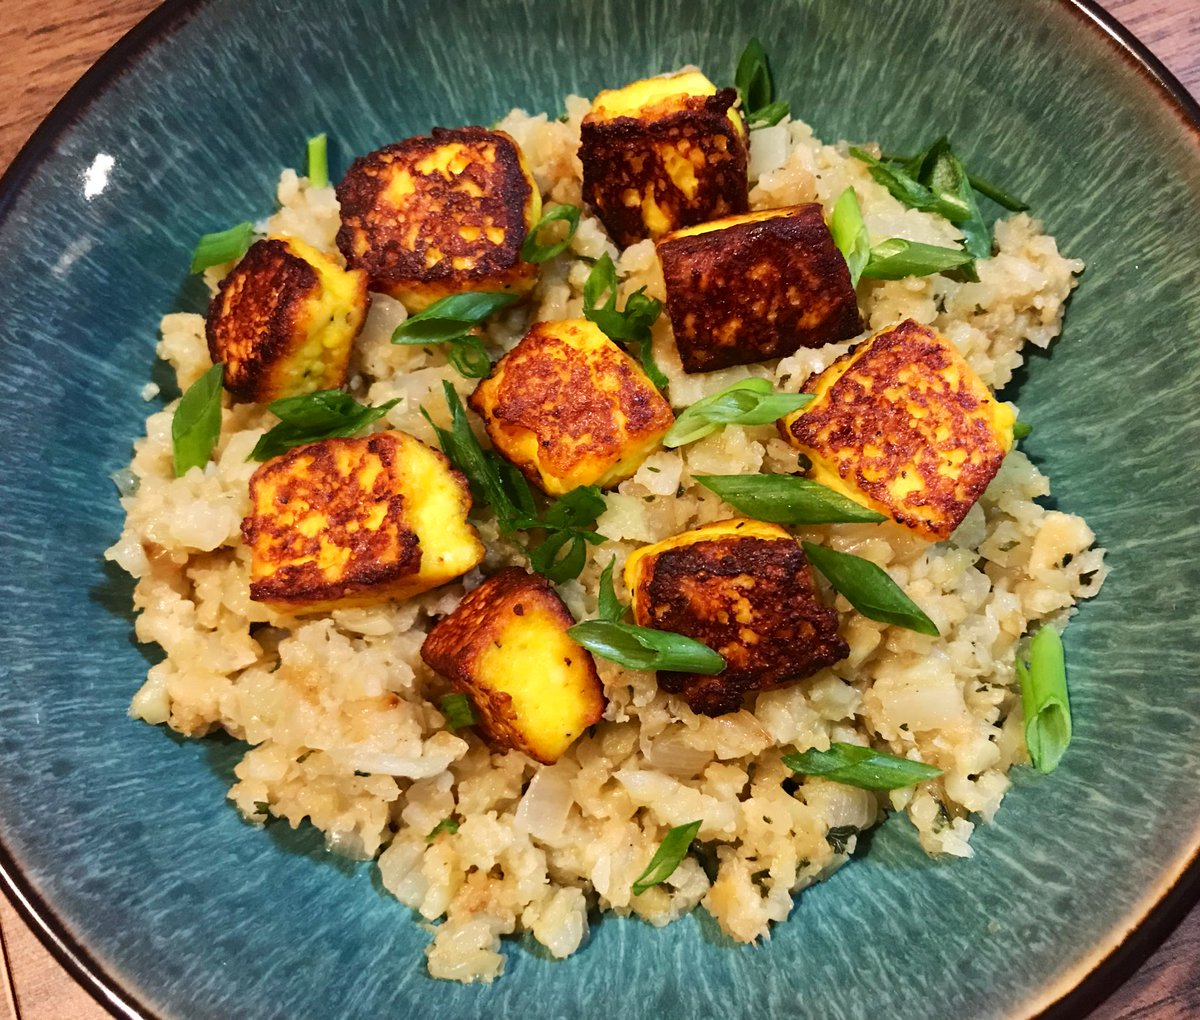 Turmeric Paneer fried in ghee over riced cauliflower sautéed in ghee with onion, garlic, & ginger Summer time food